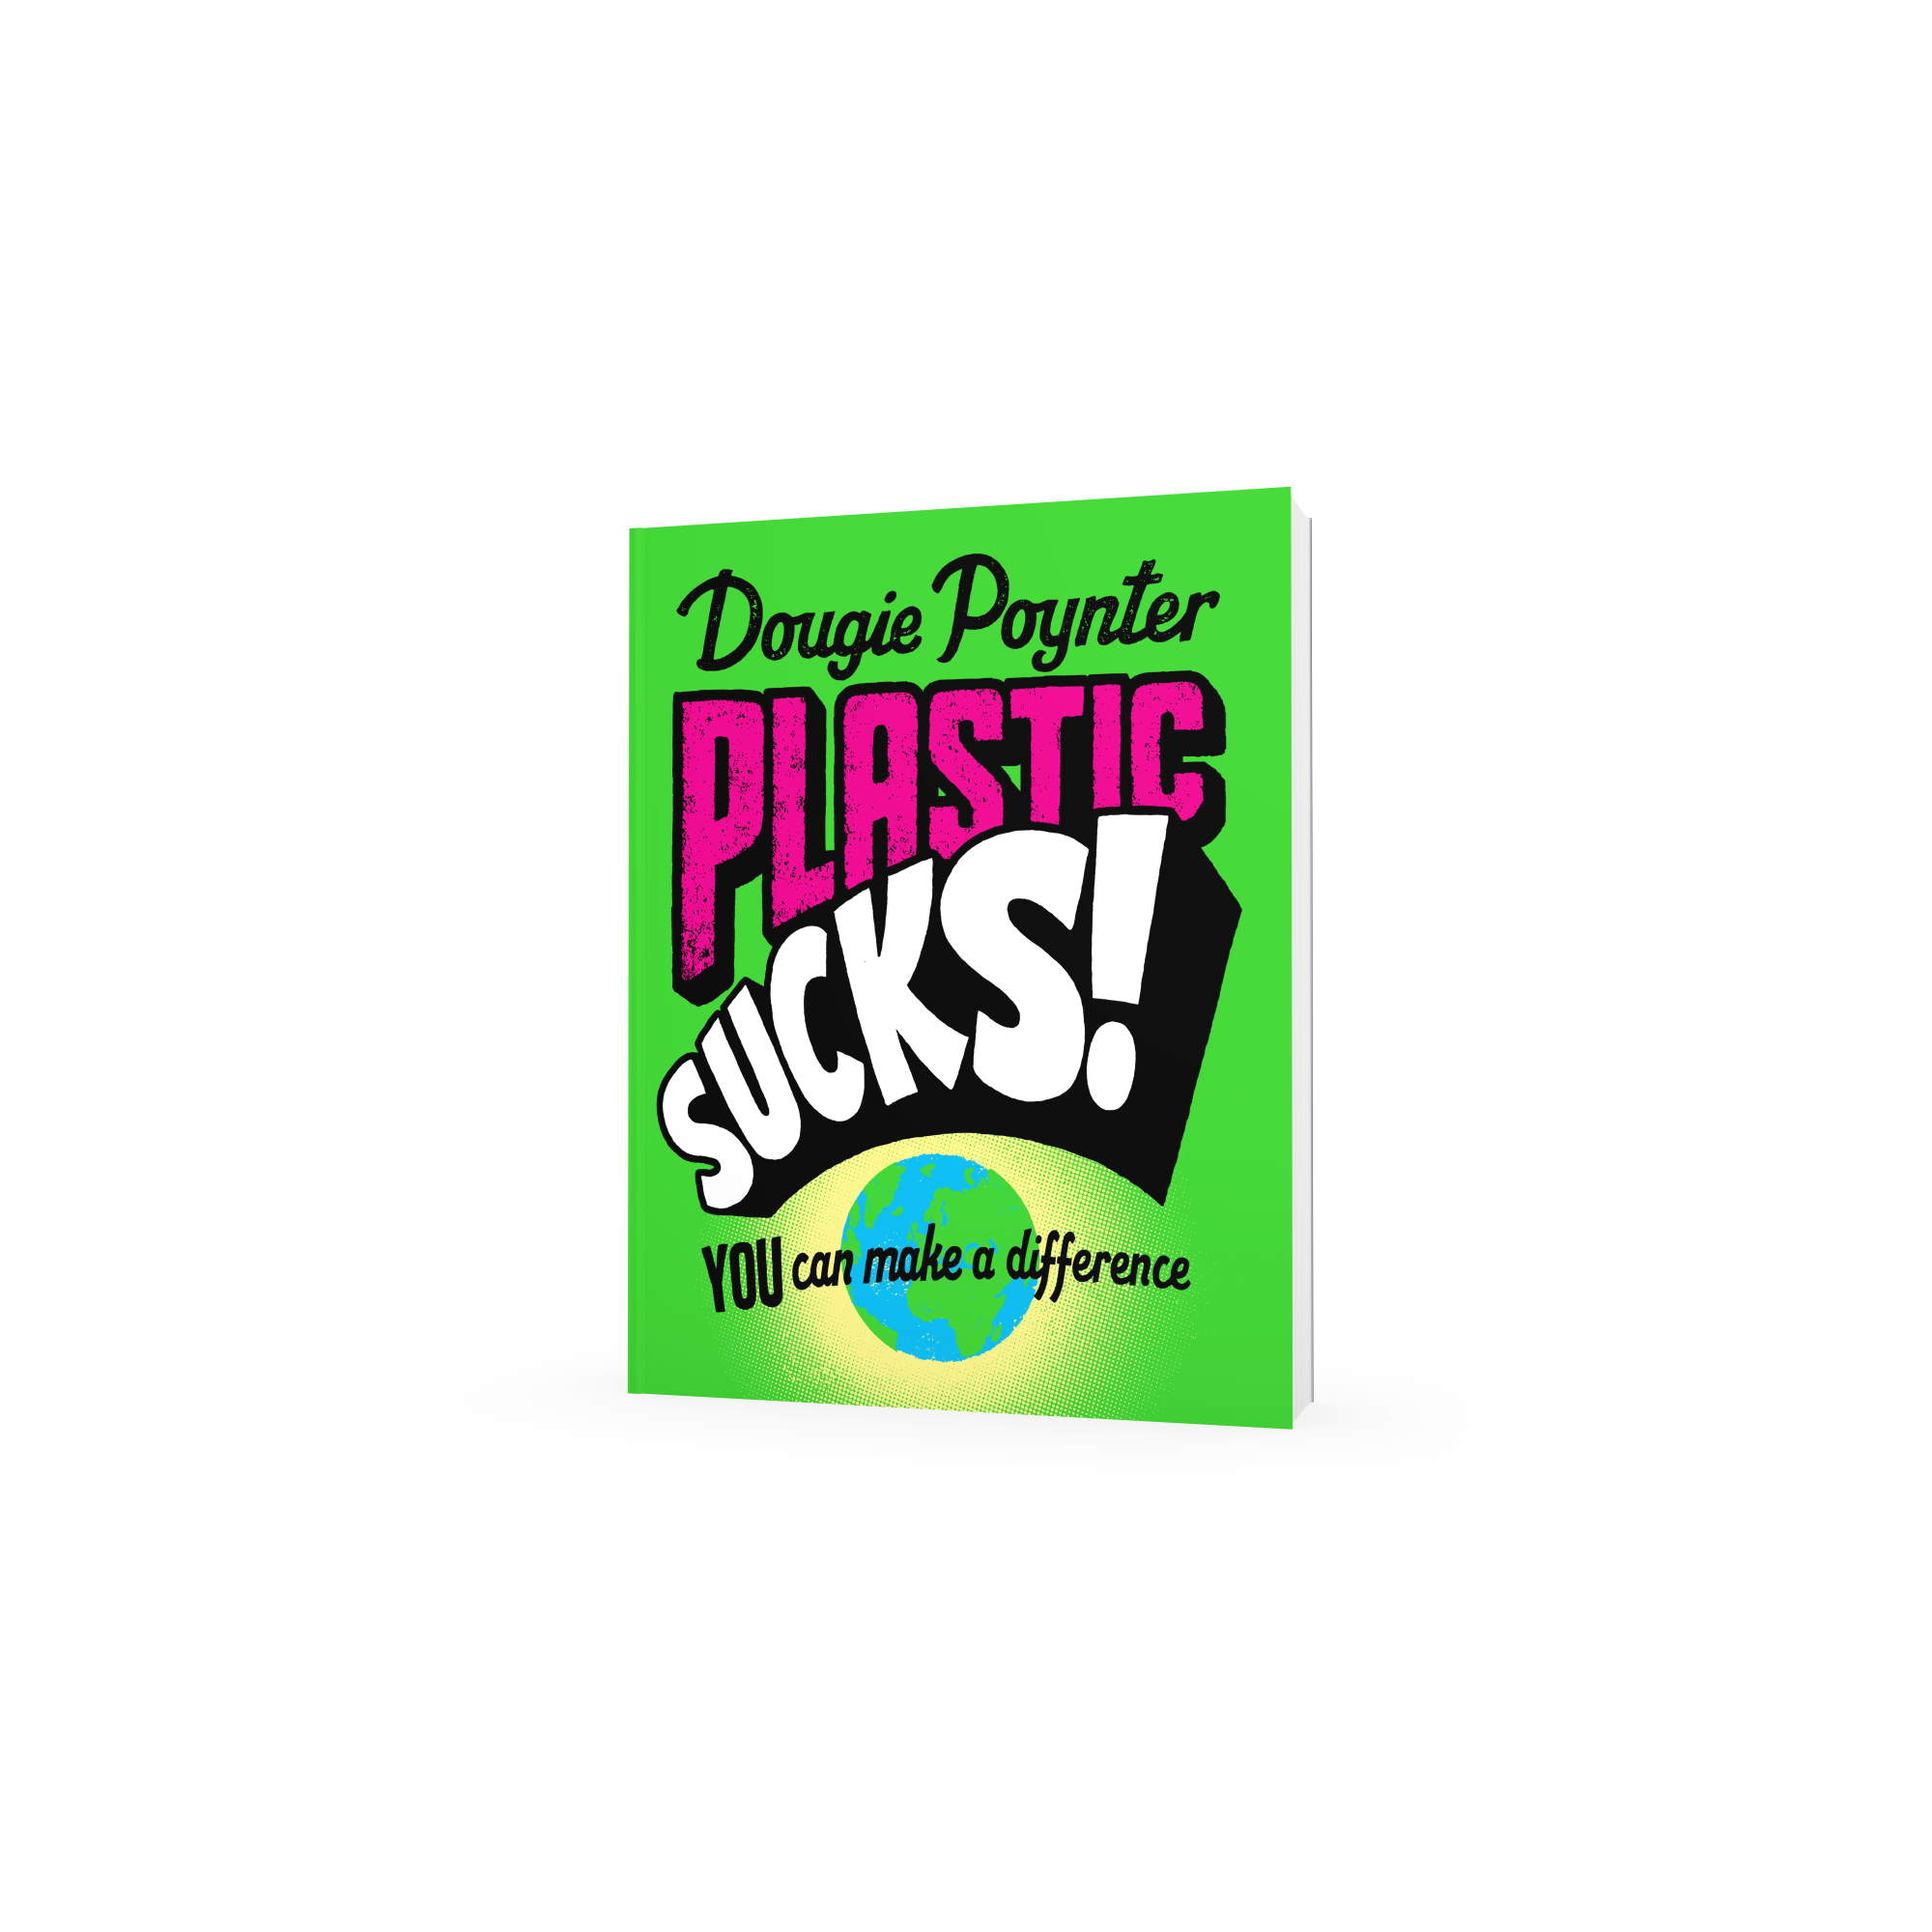 Plasticsucks packshot